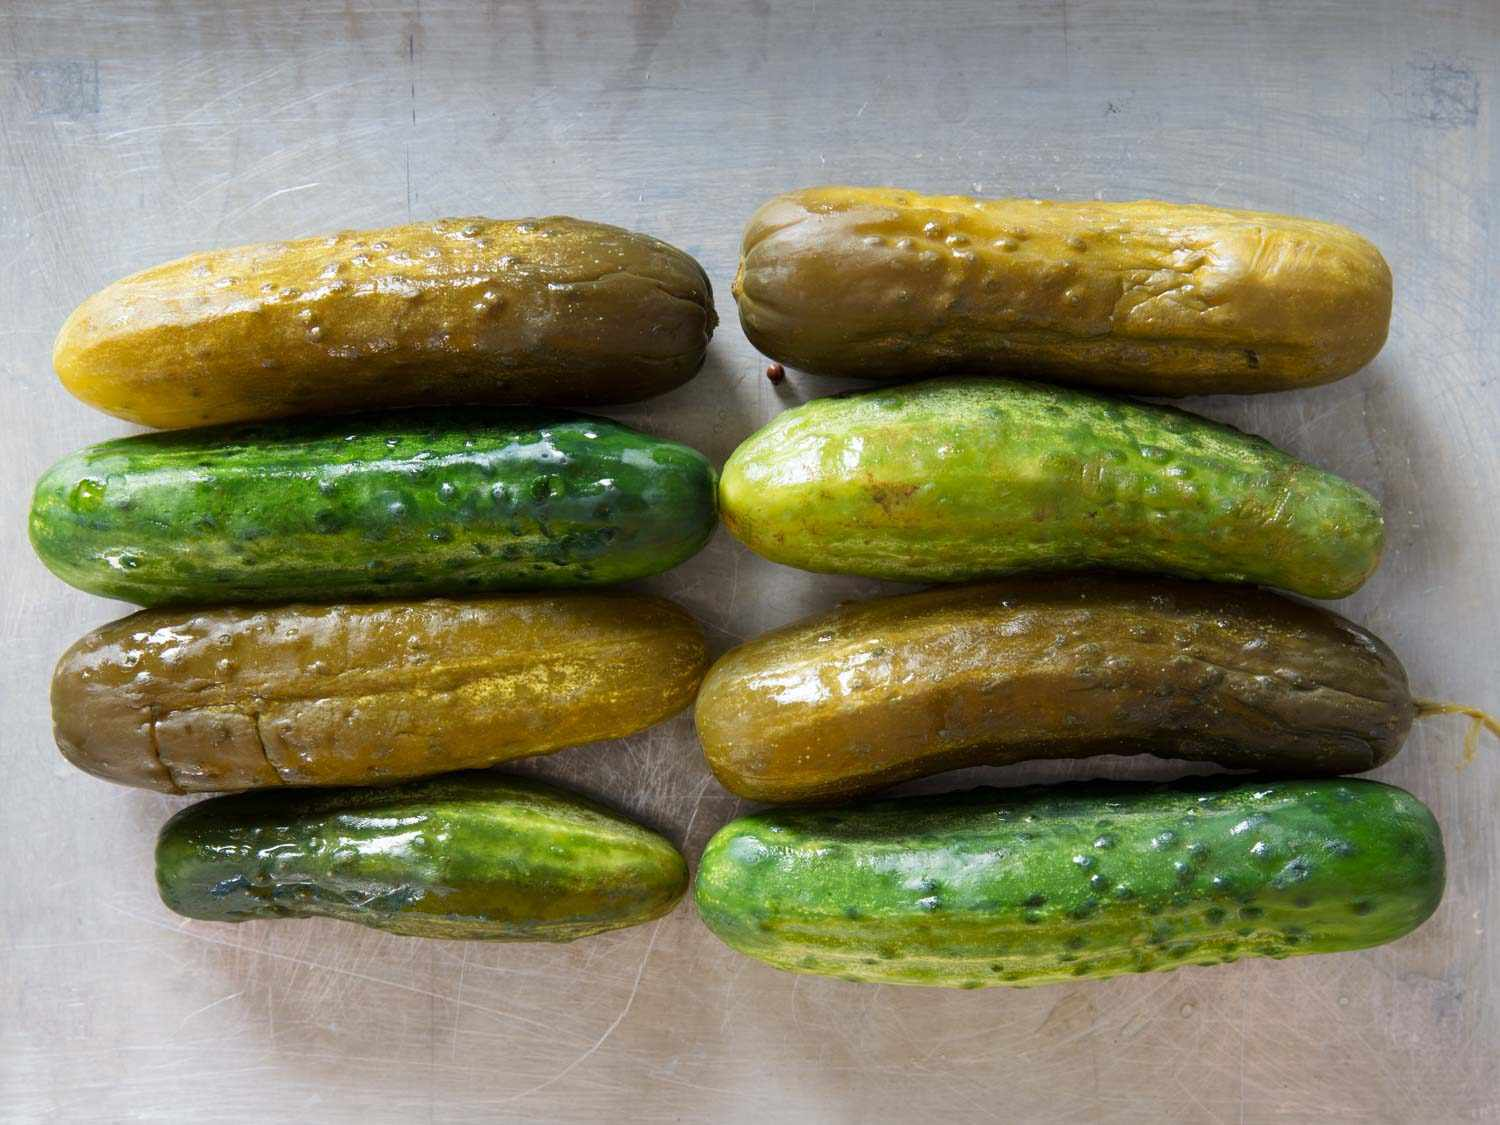 Full sour and half sour pickles from Jewish deli